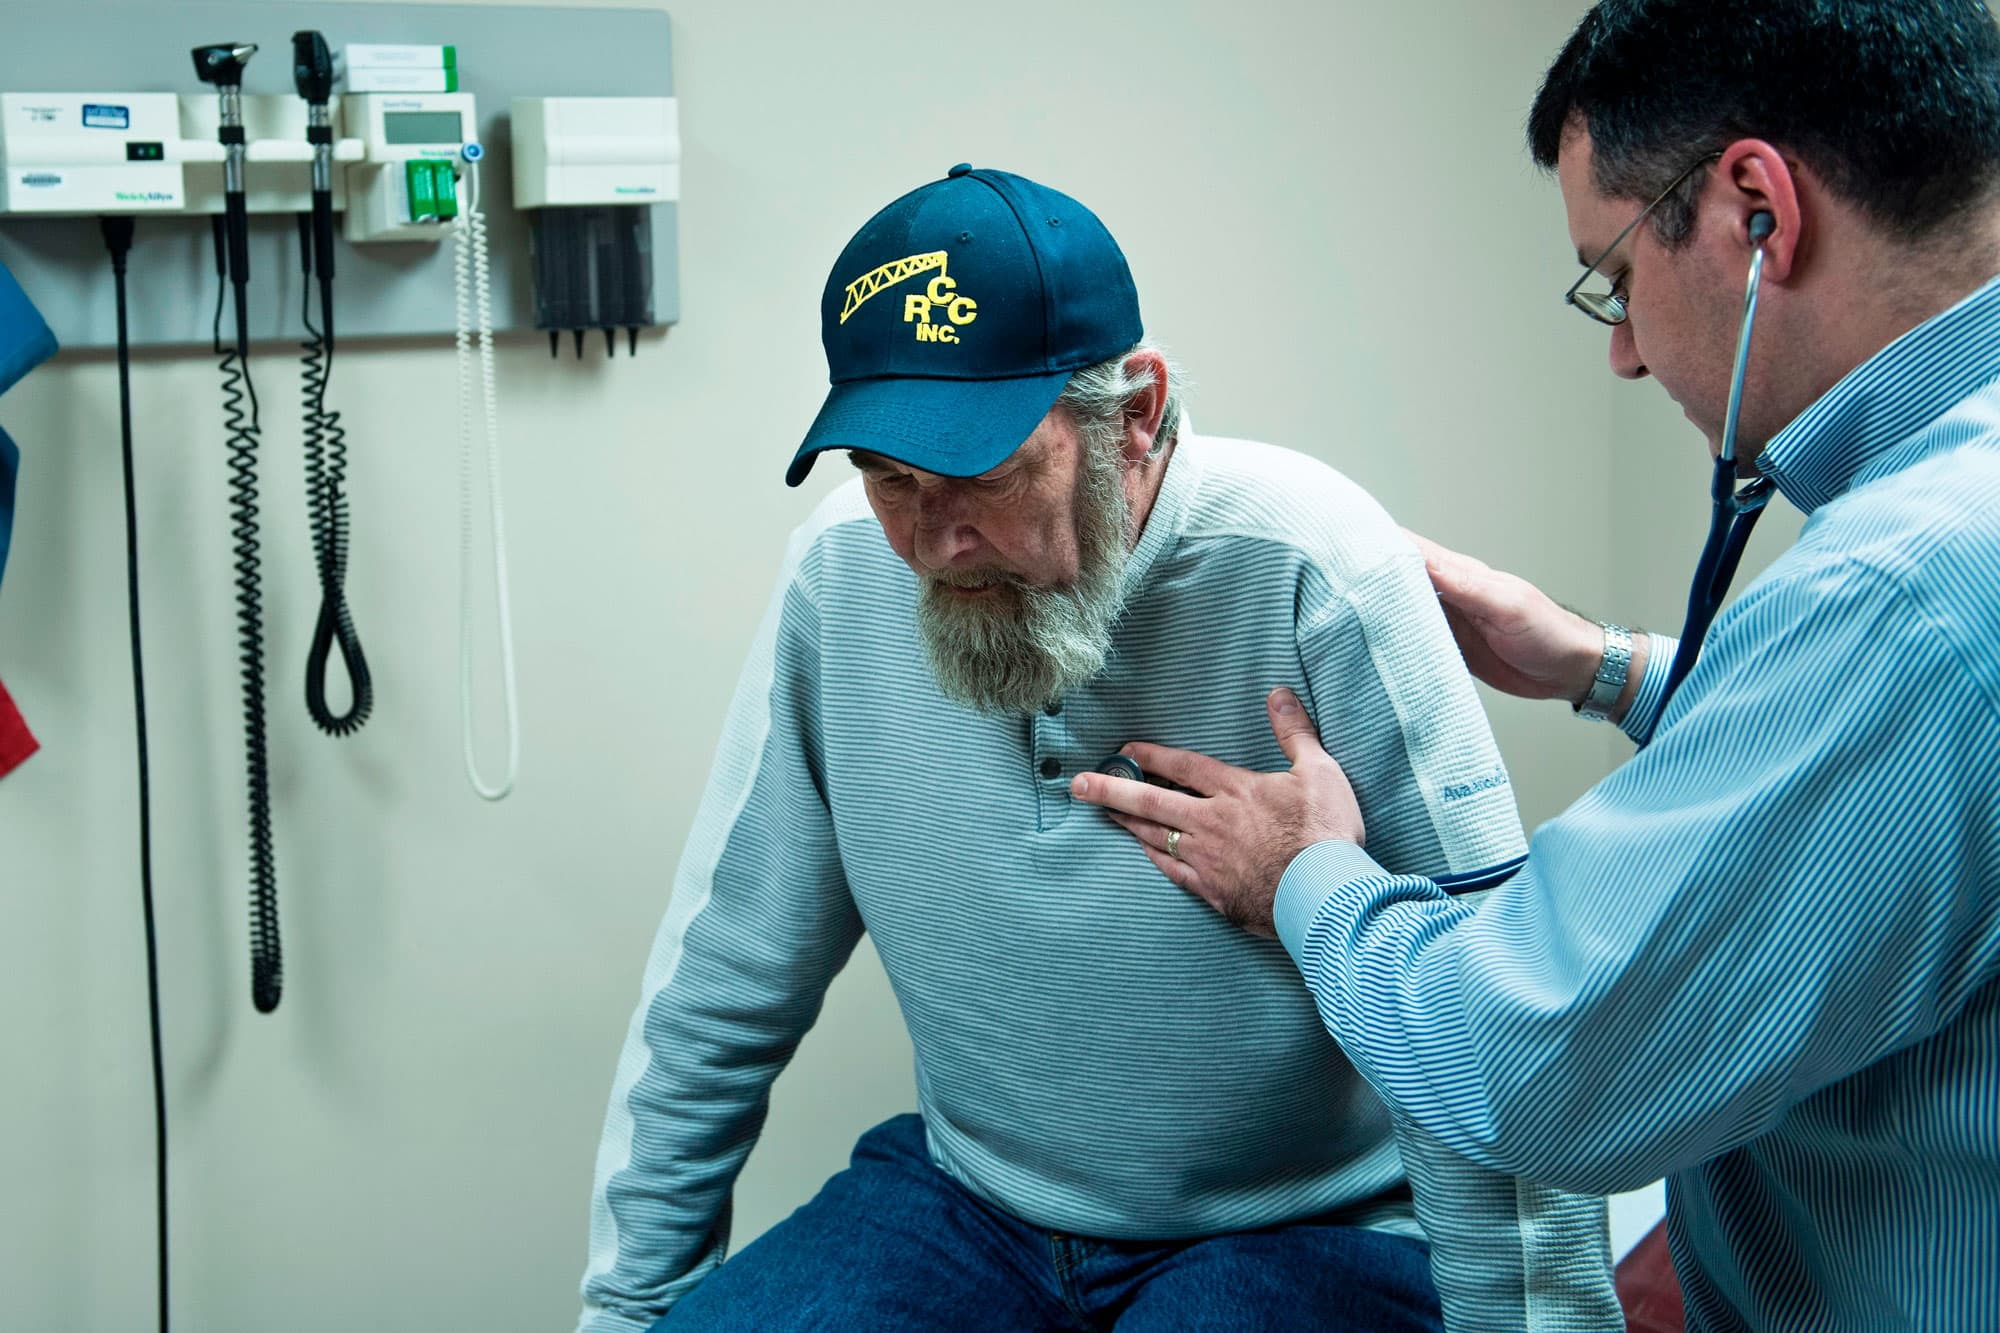 Here's what you should know about Medicare costs if you're nearing age 65